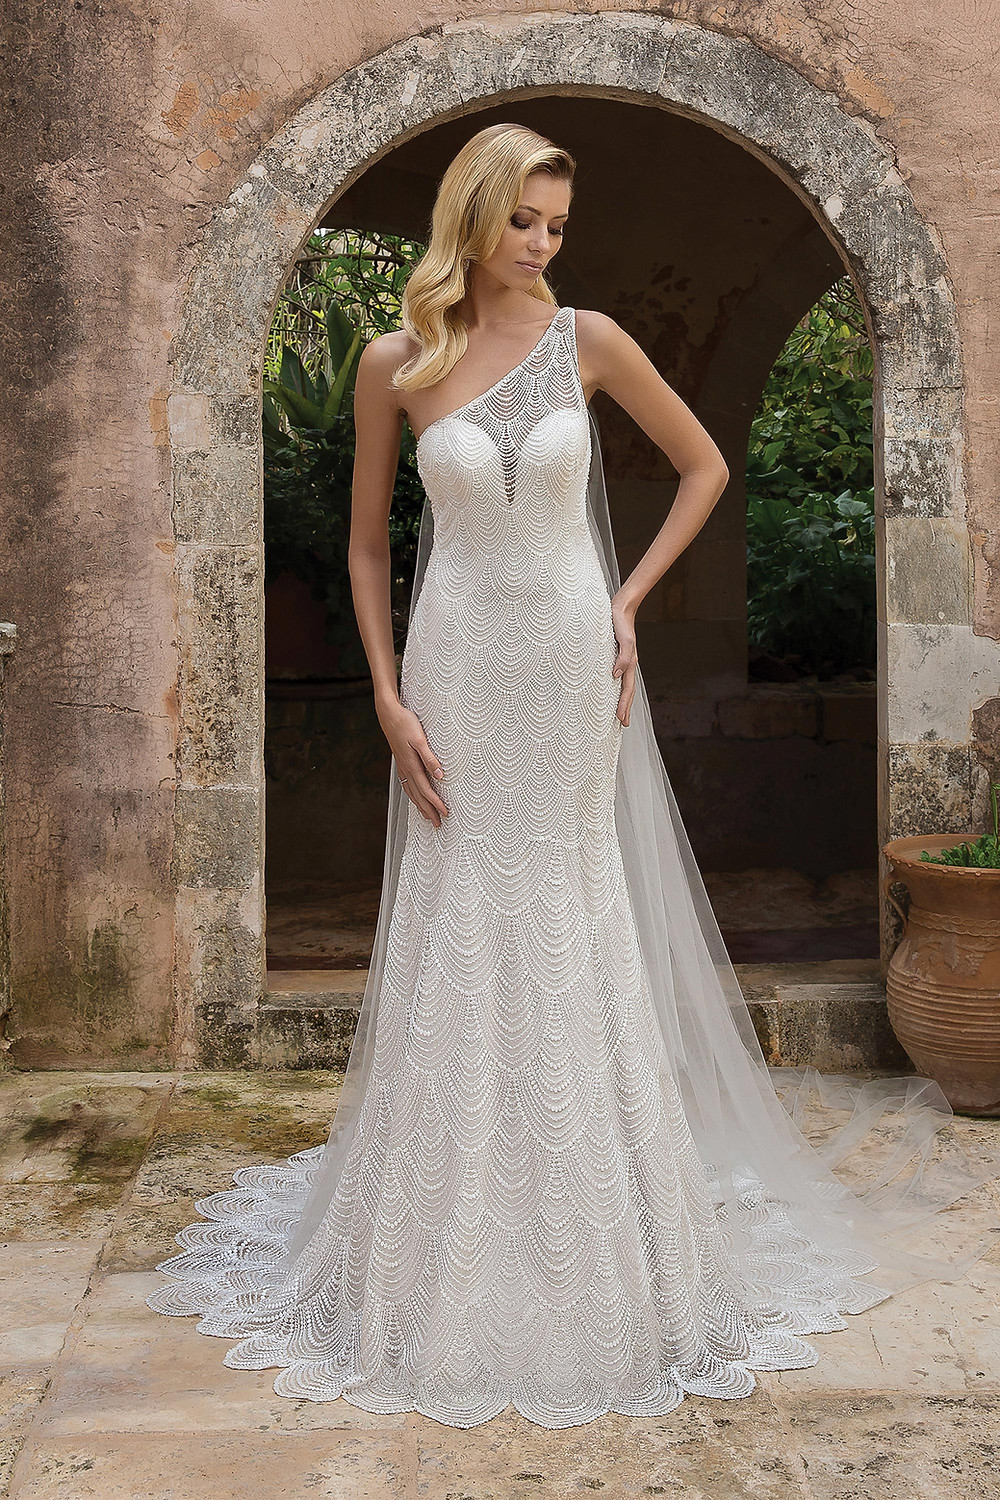 A Justin Alexander one shoulder mermaid wedding dress with an overlay and a scallop pattern